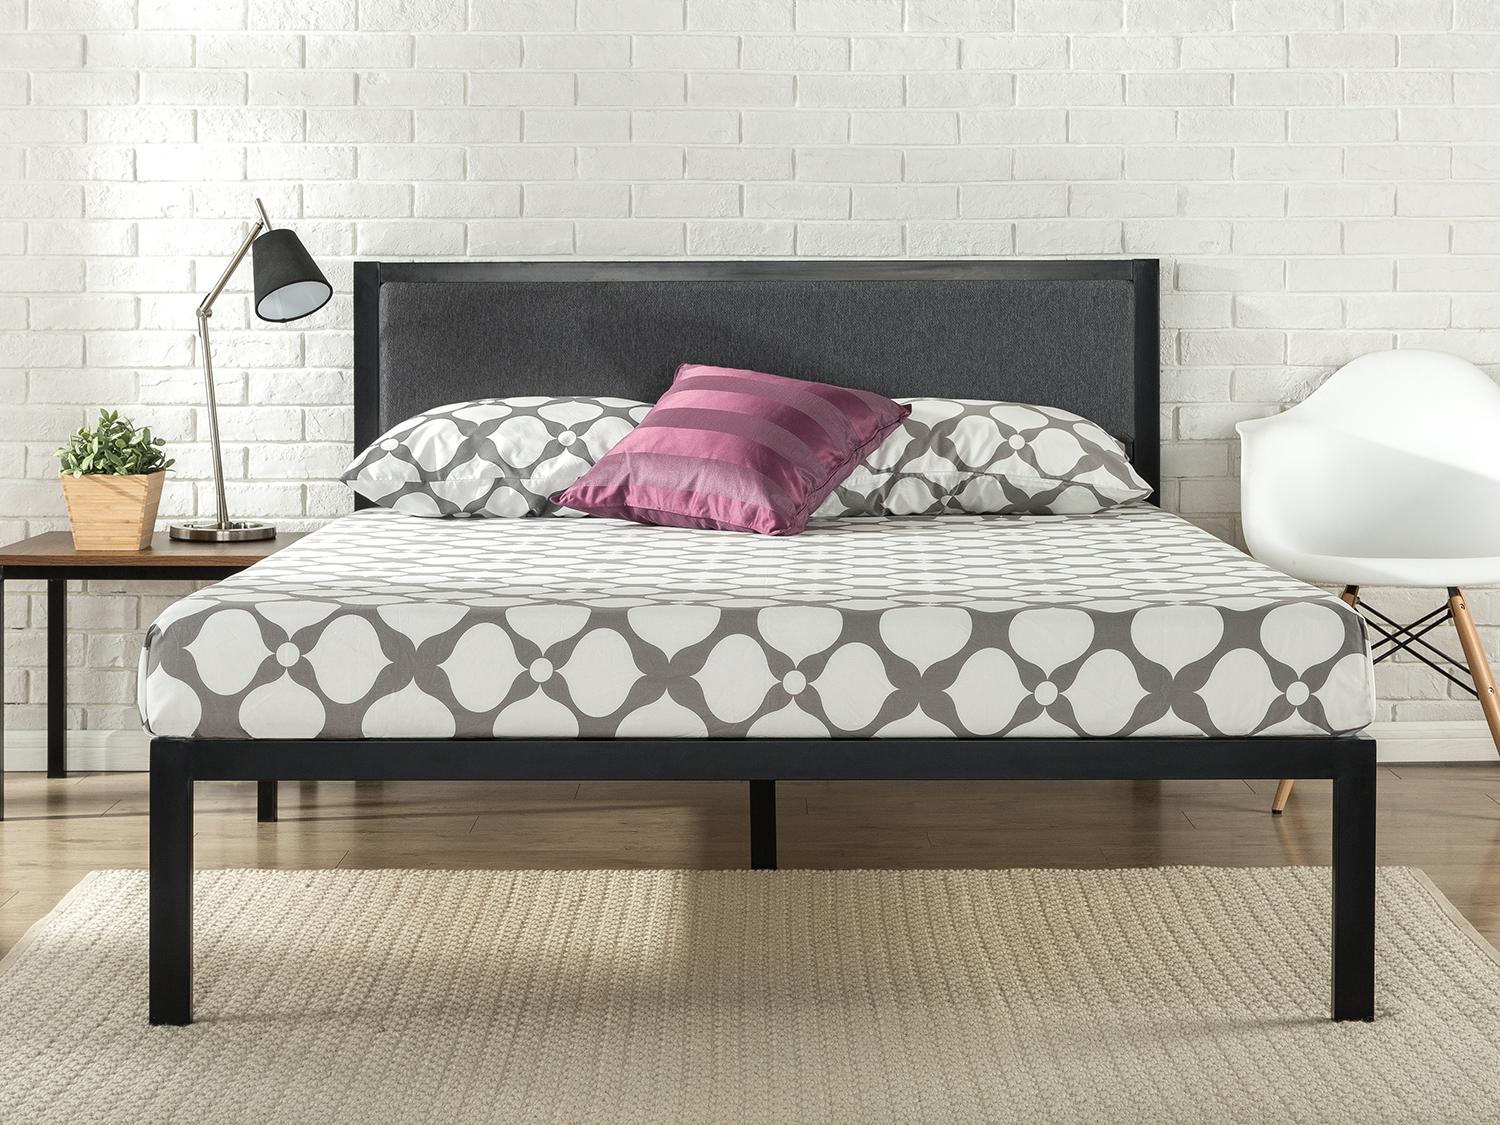 14 Inch King Platform Metal Bed Frame with Upholstered Headboard by ZINUS